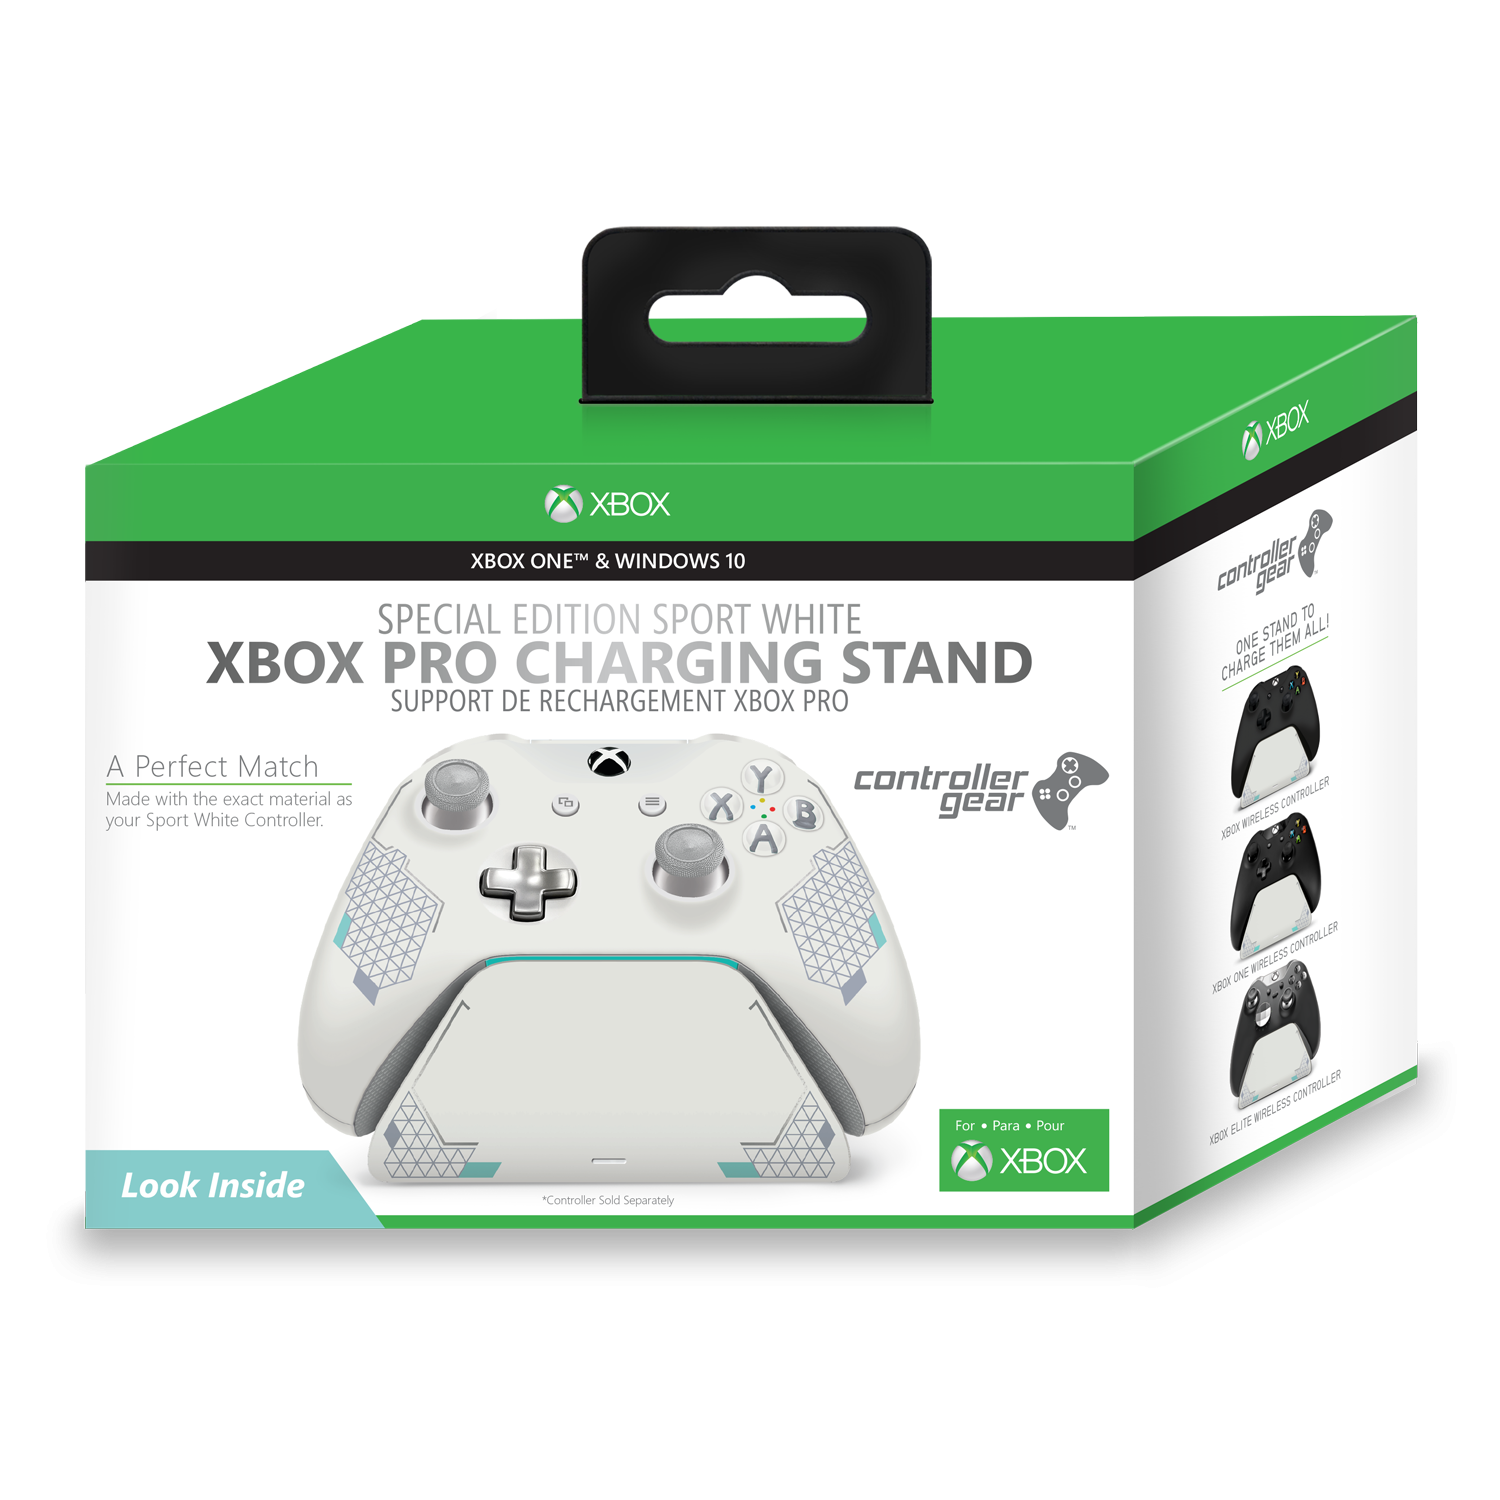 Sport White Special Edition Xbox Pro Charging Stand. Exact match to your Xbox One Sport White Controller. Officially Licensed and Designed for Xbox